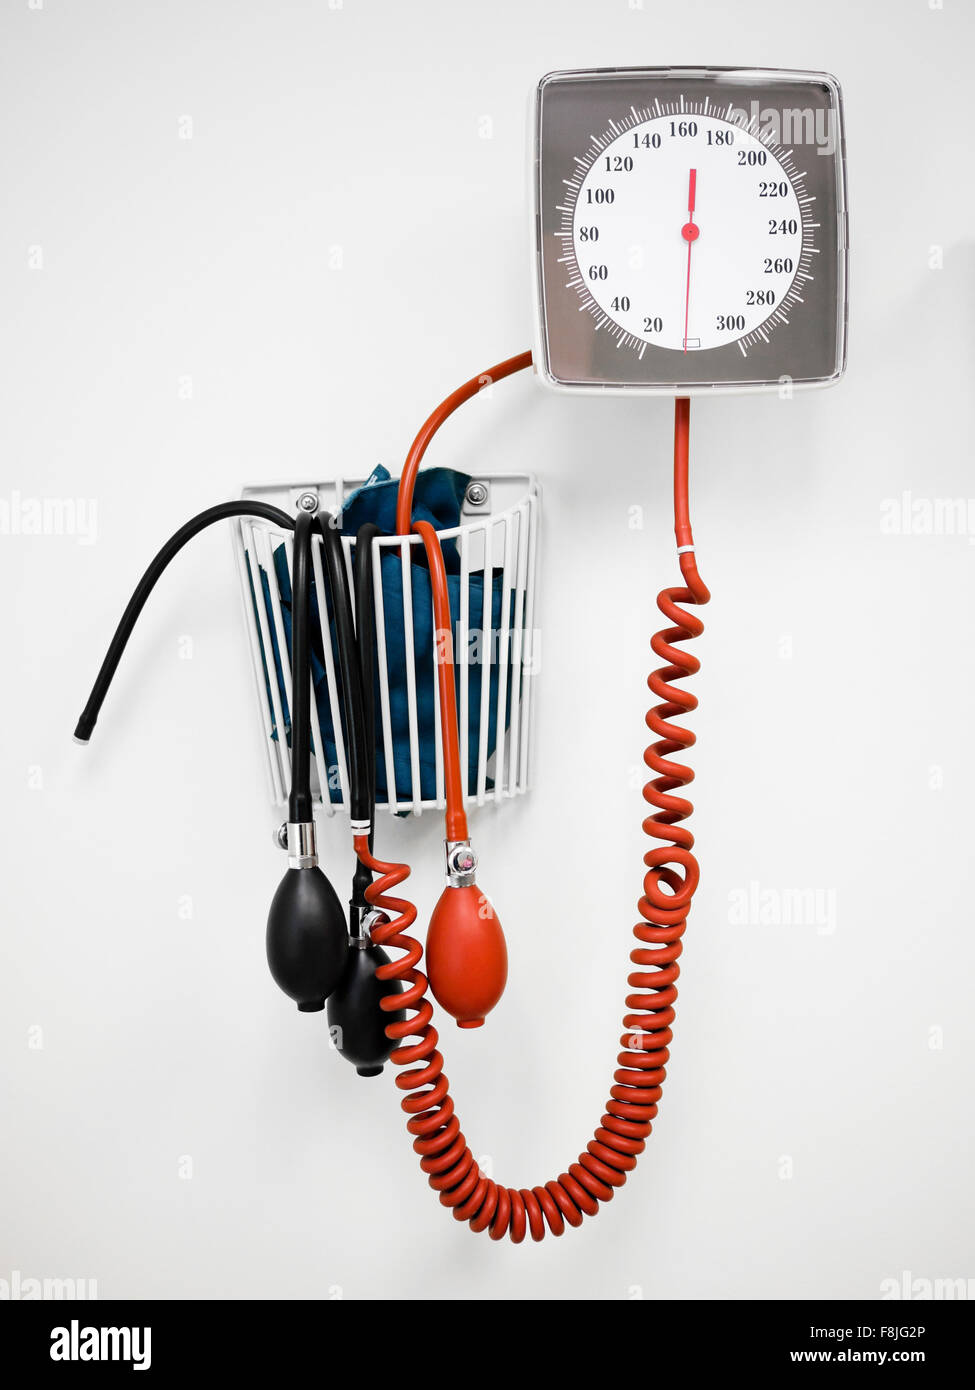 Sphygmomanometer Blood Pressure Gauge -Traditional bulb and dial sphygmomanometer blood pressure gauge on a hospital - Stock Image